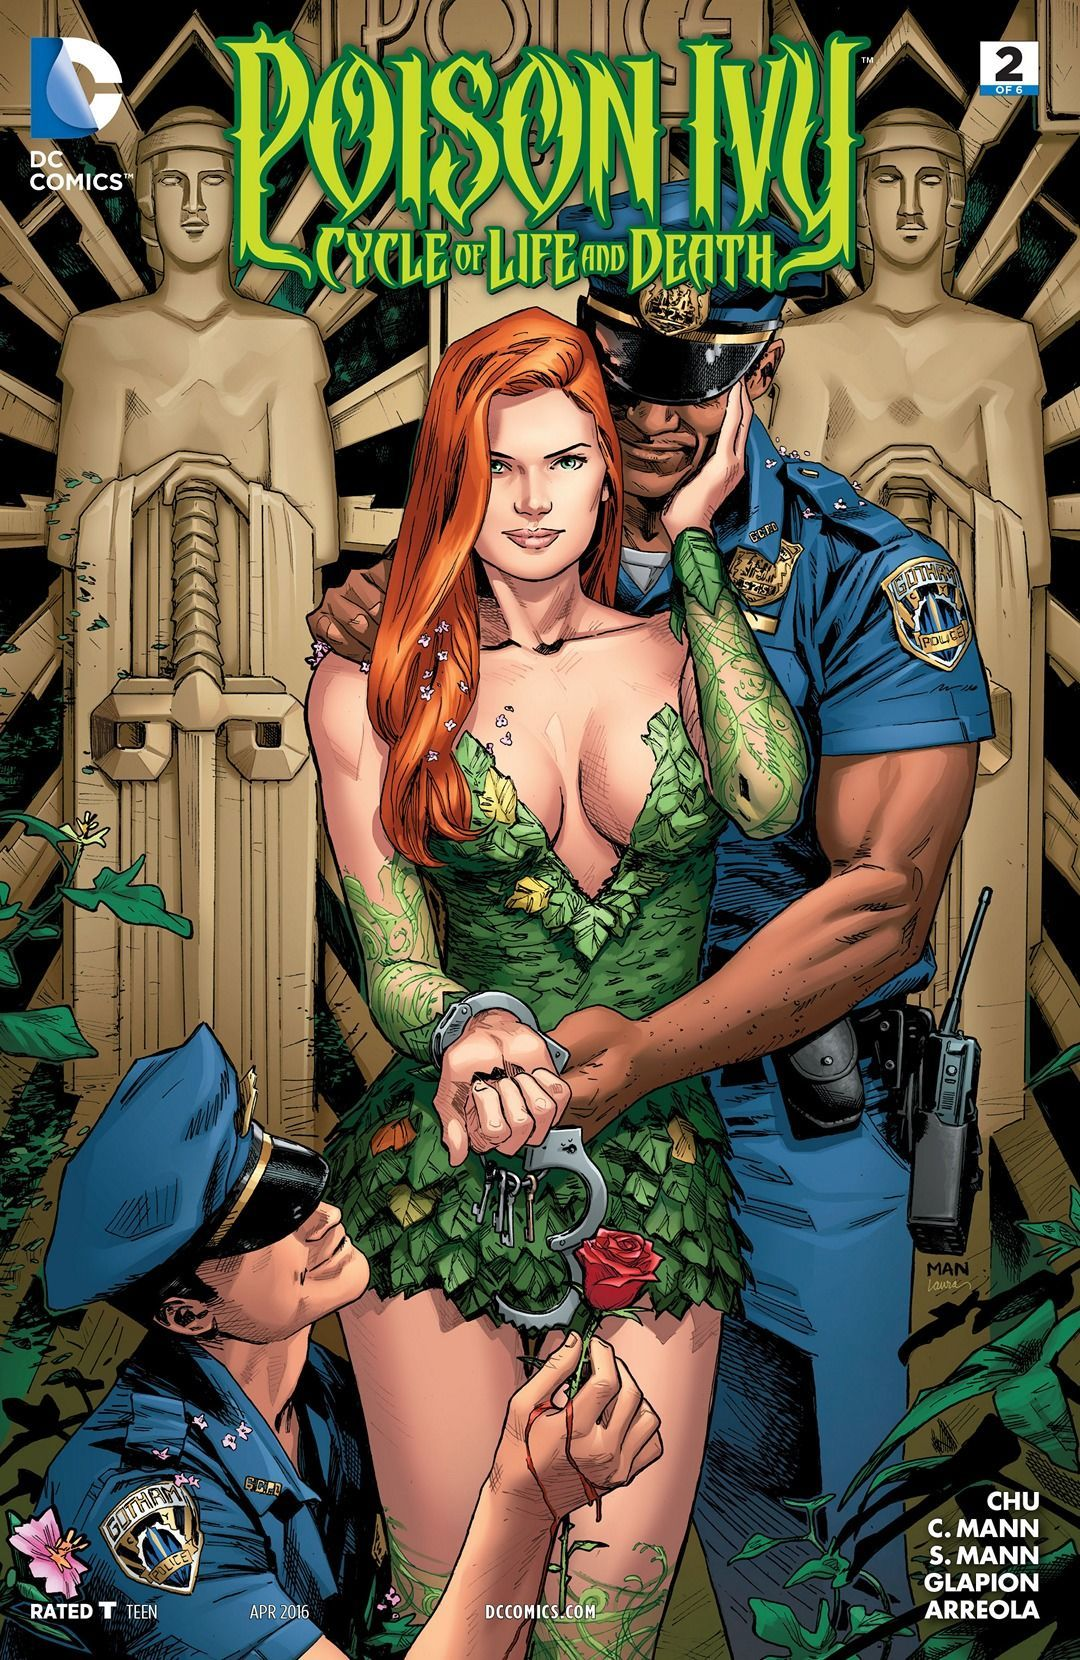 Poison_Ivy_Cycle_of_Life_and_Death_Vol_1_2